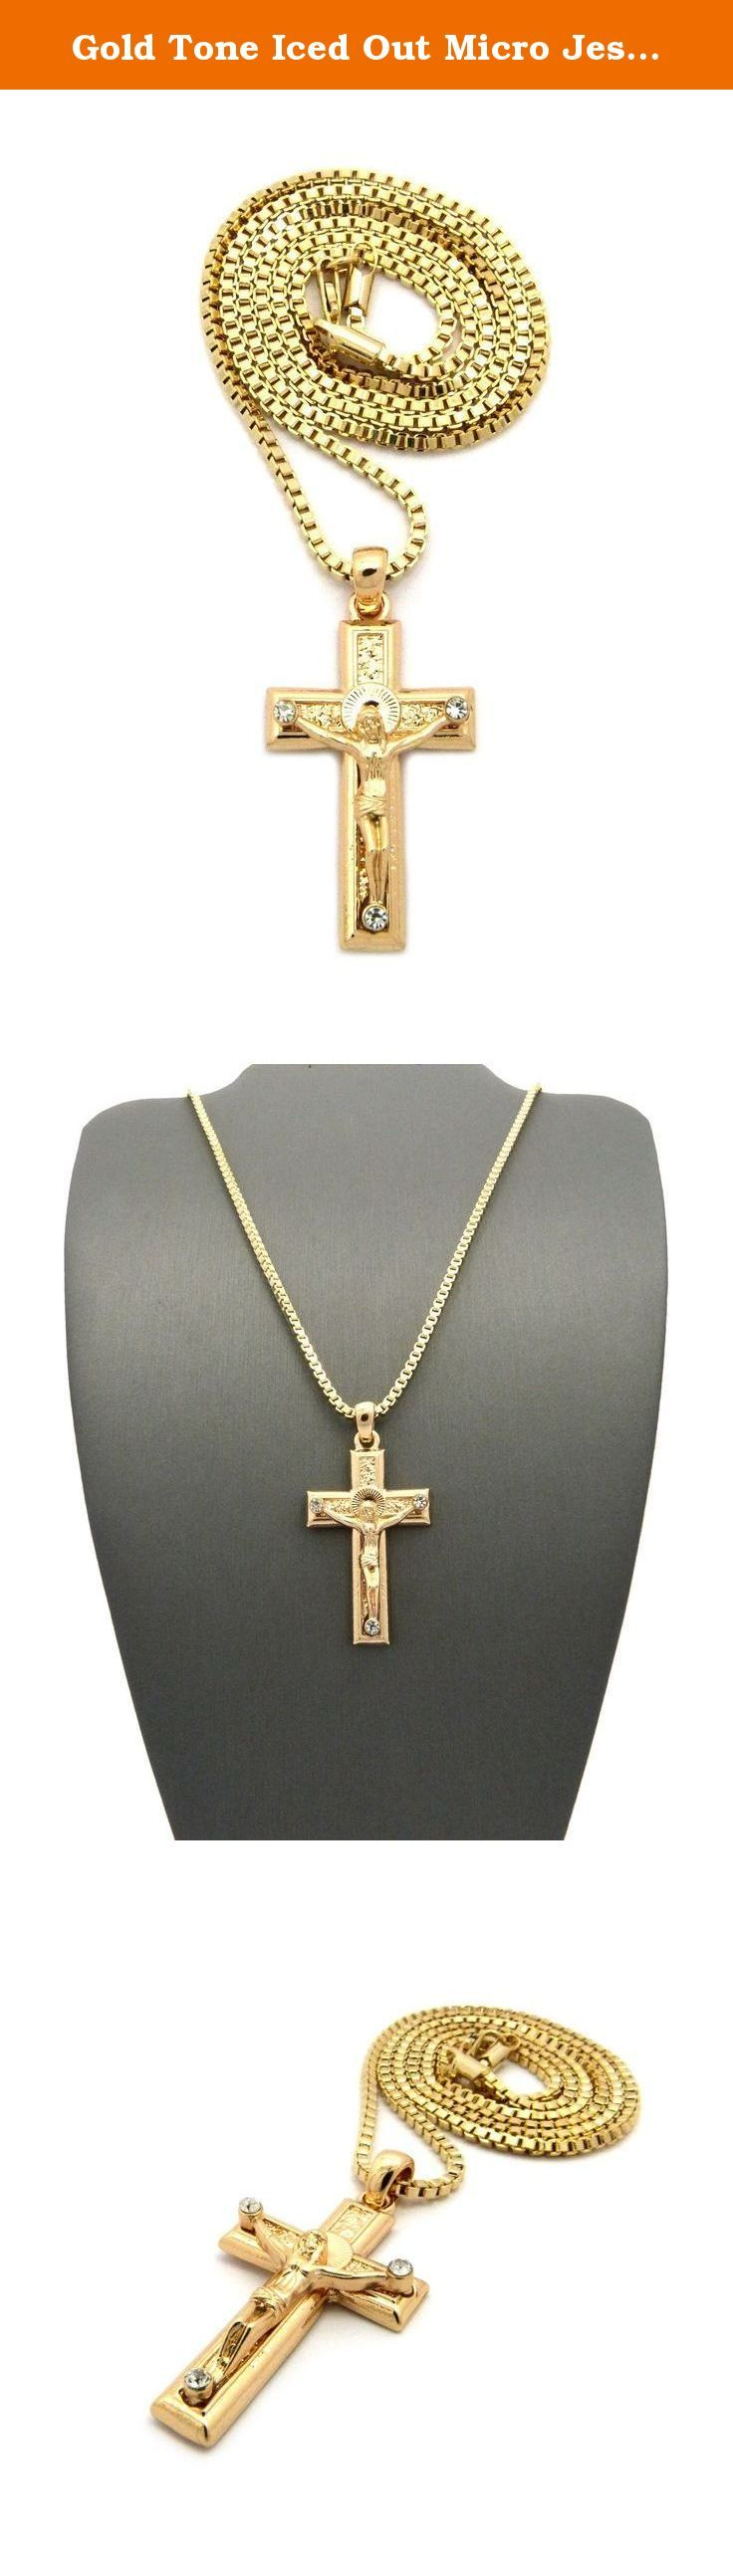 """Gold Tone Iced Out Micro Jesus Crucified Cross Pendant 2mm 24"""" Box Chain Necklace XMP42GBX. Gold Tone Iced Out Micro Jesus Crucified Cross Pendant 2mm 24"""" Box Chain Necklace."""